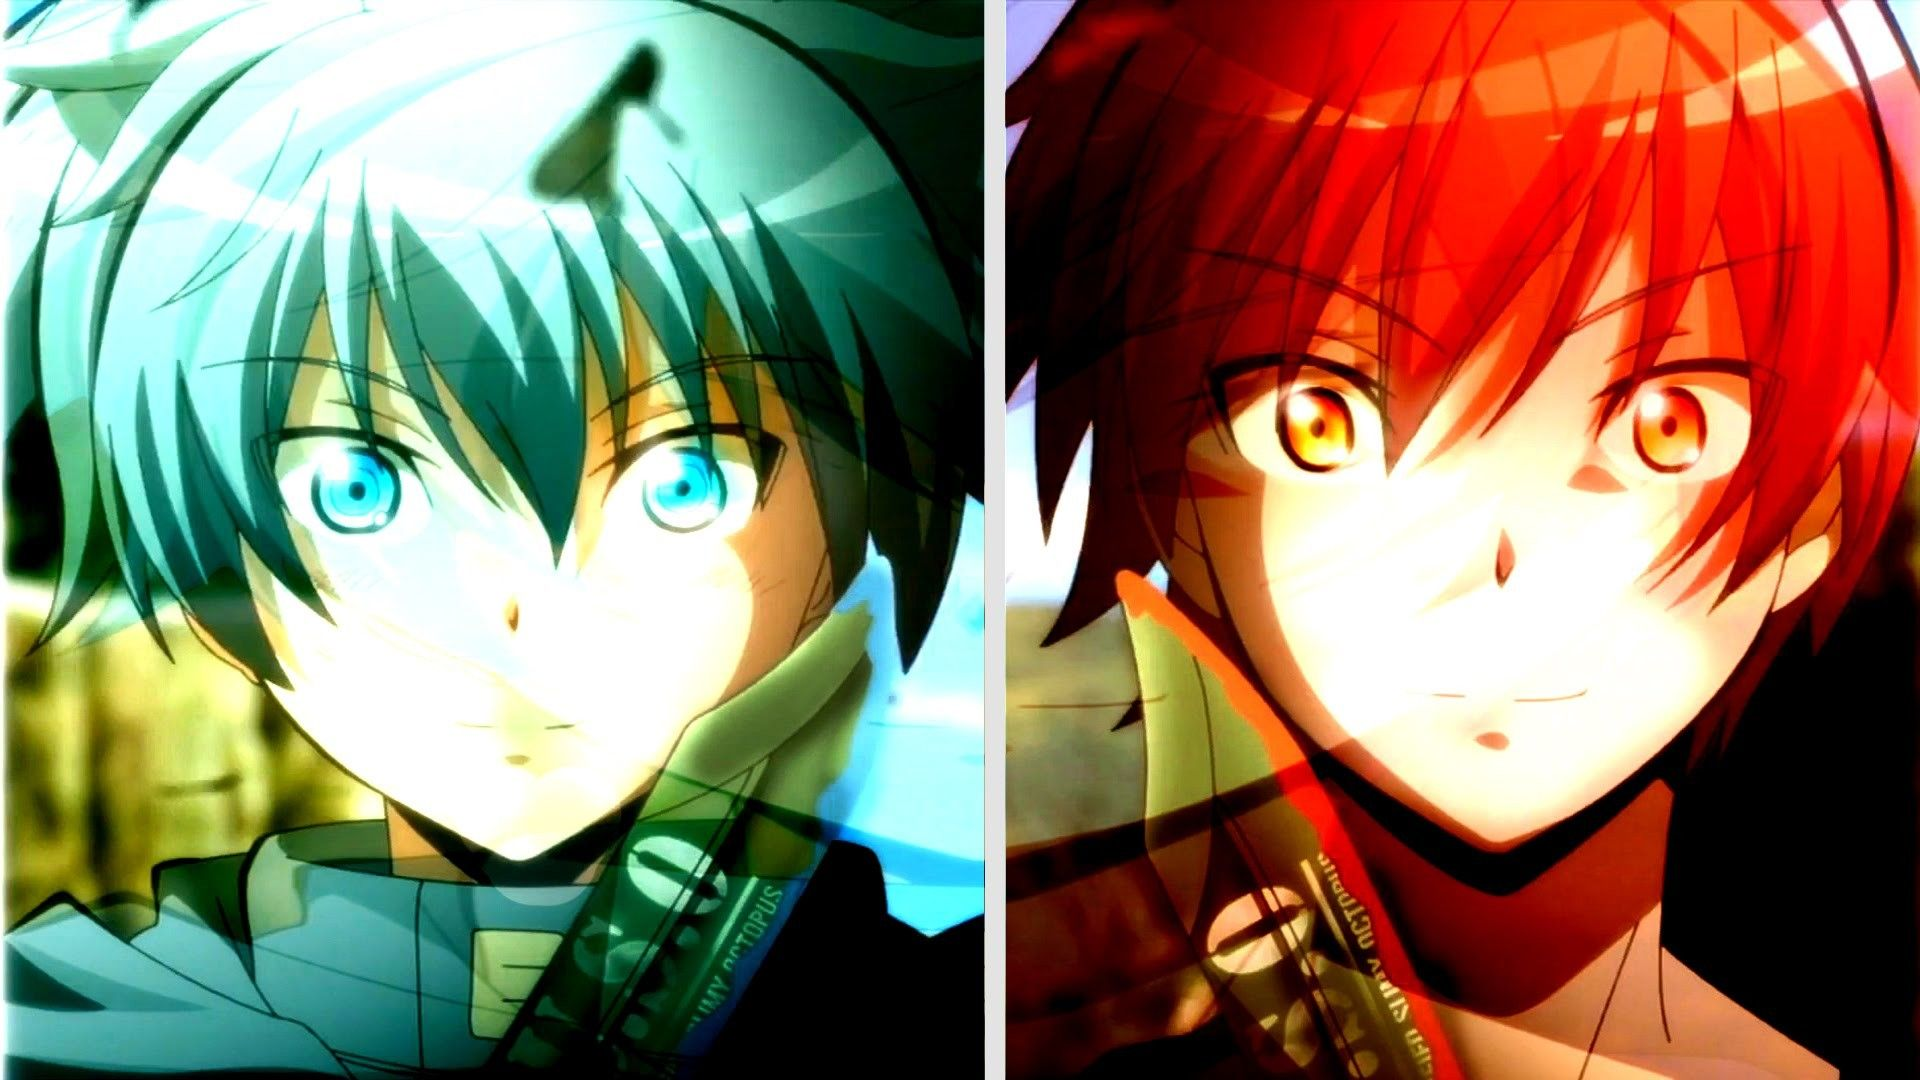 1920x1080 Assassination Classroom HD Wallpapers (86+ images)